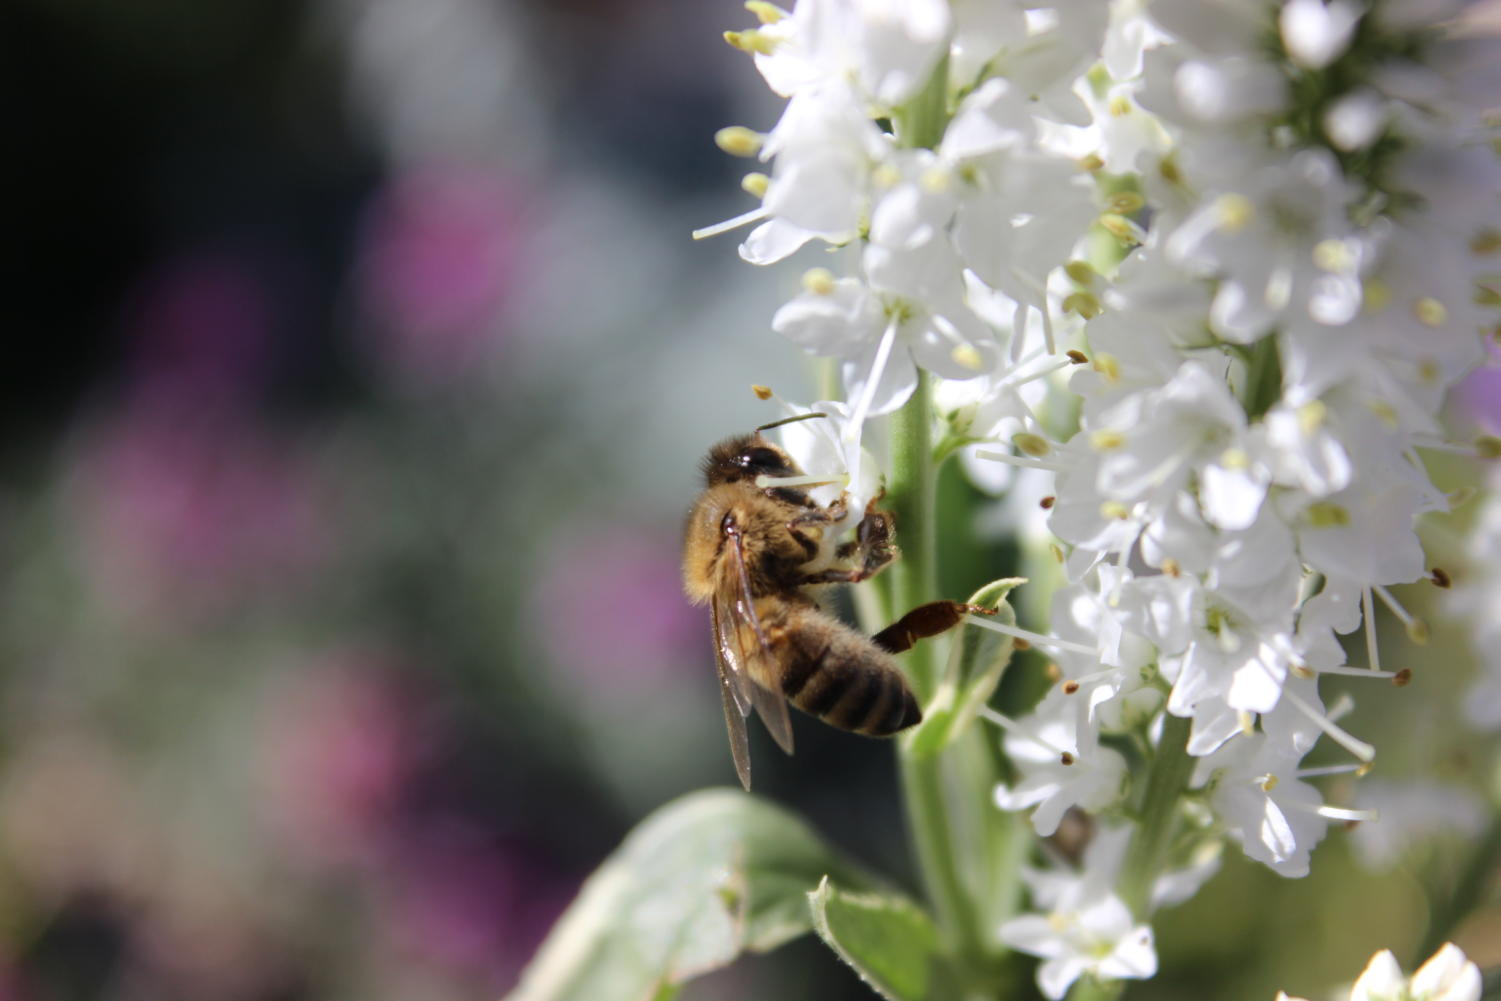 Honey bees frequent flowers found in gardens or backyards, collecting nectar for the honey making process.